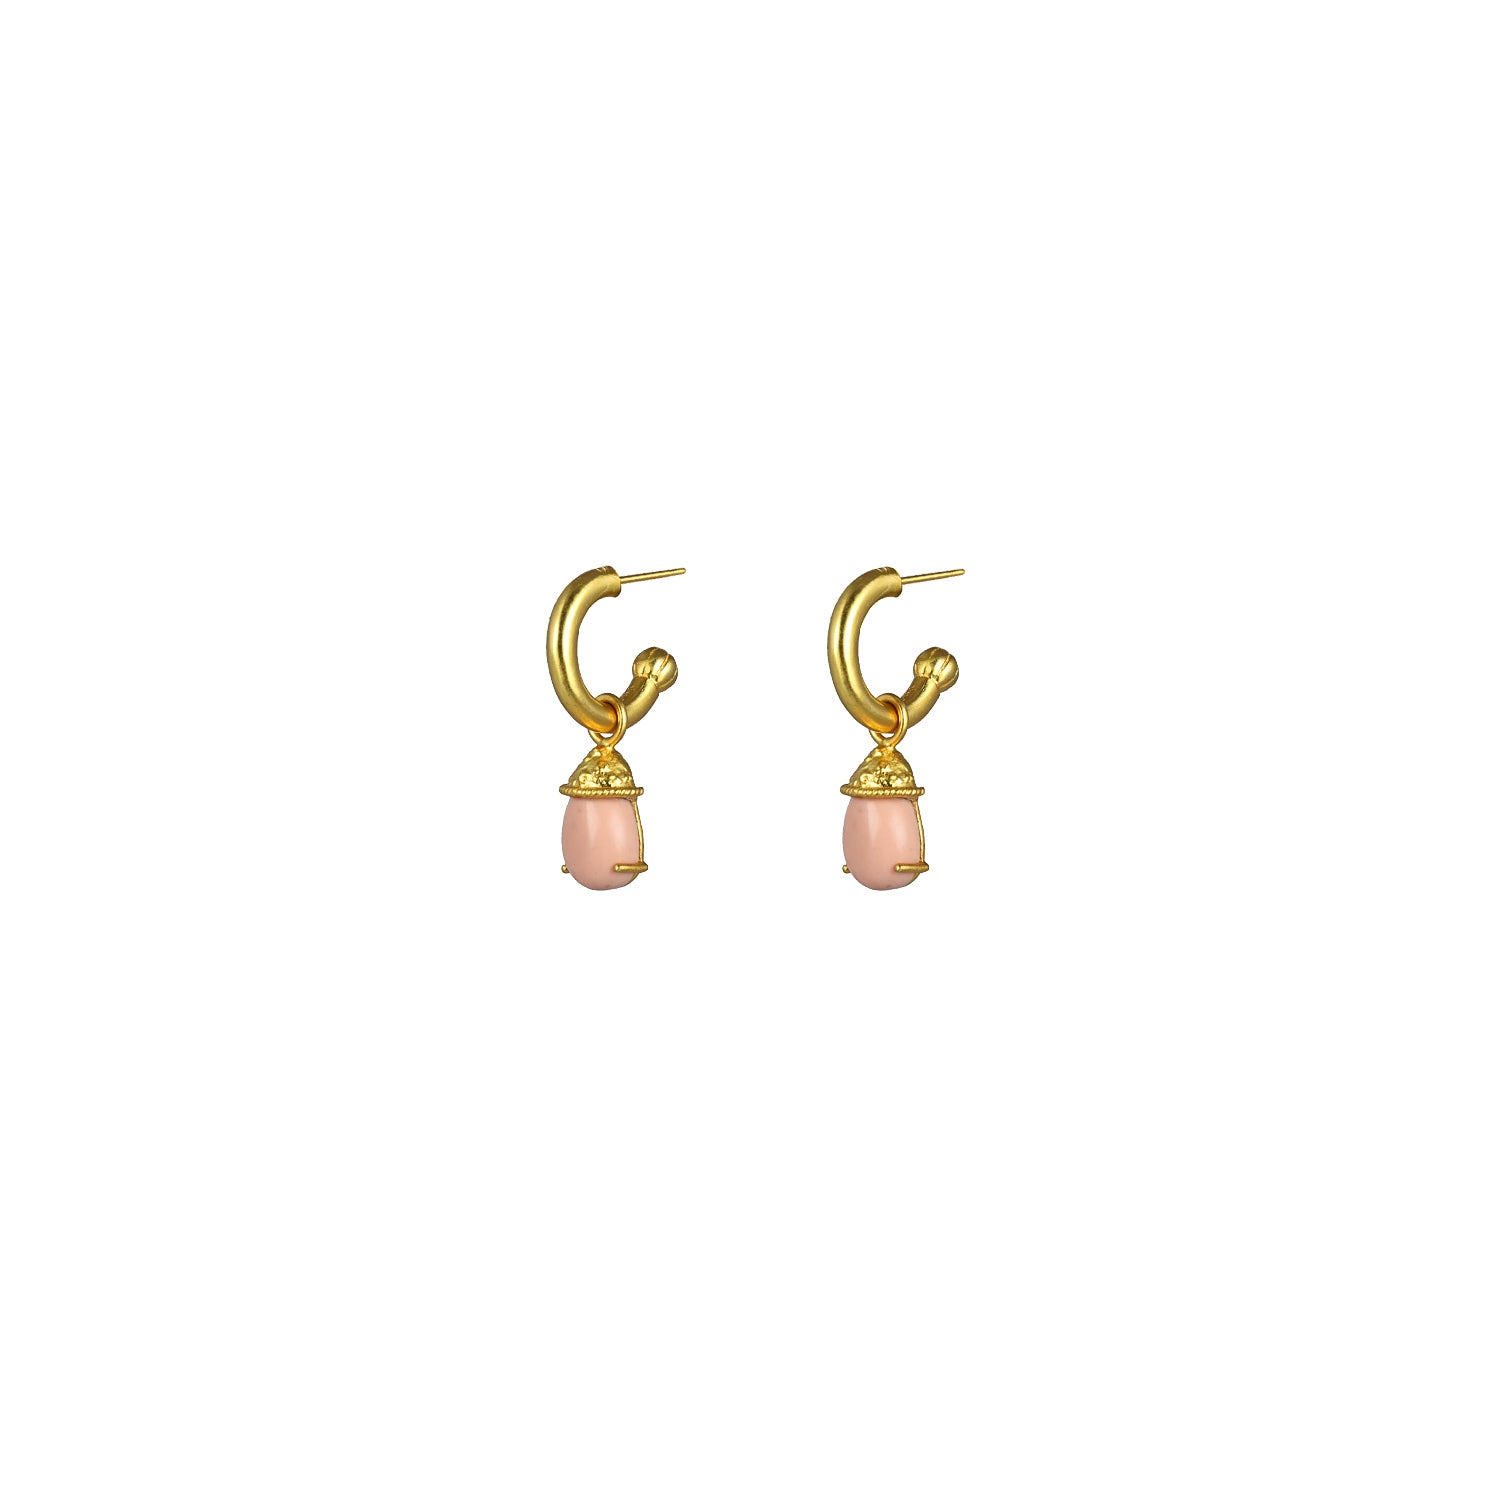 Jewel Earrings Pink Coral (2 in 1 with removable charm) PRE ORDER